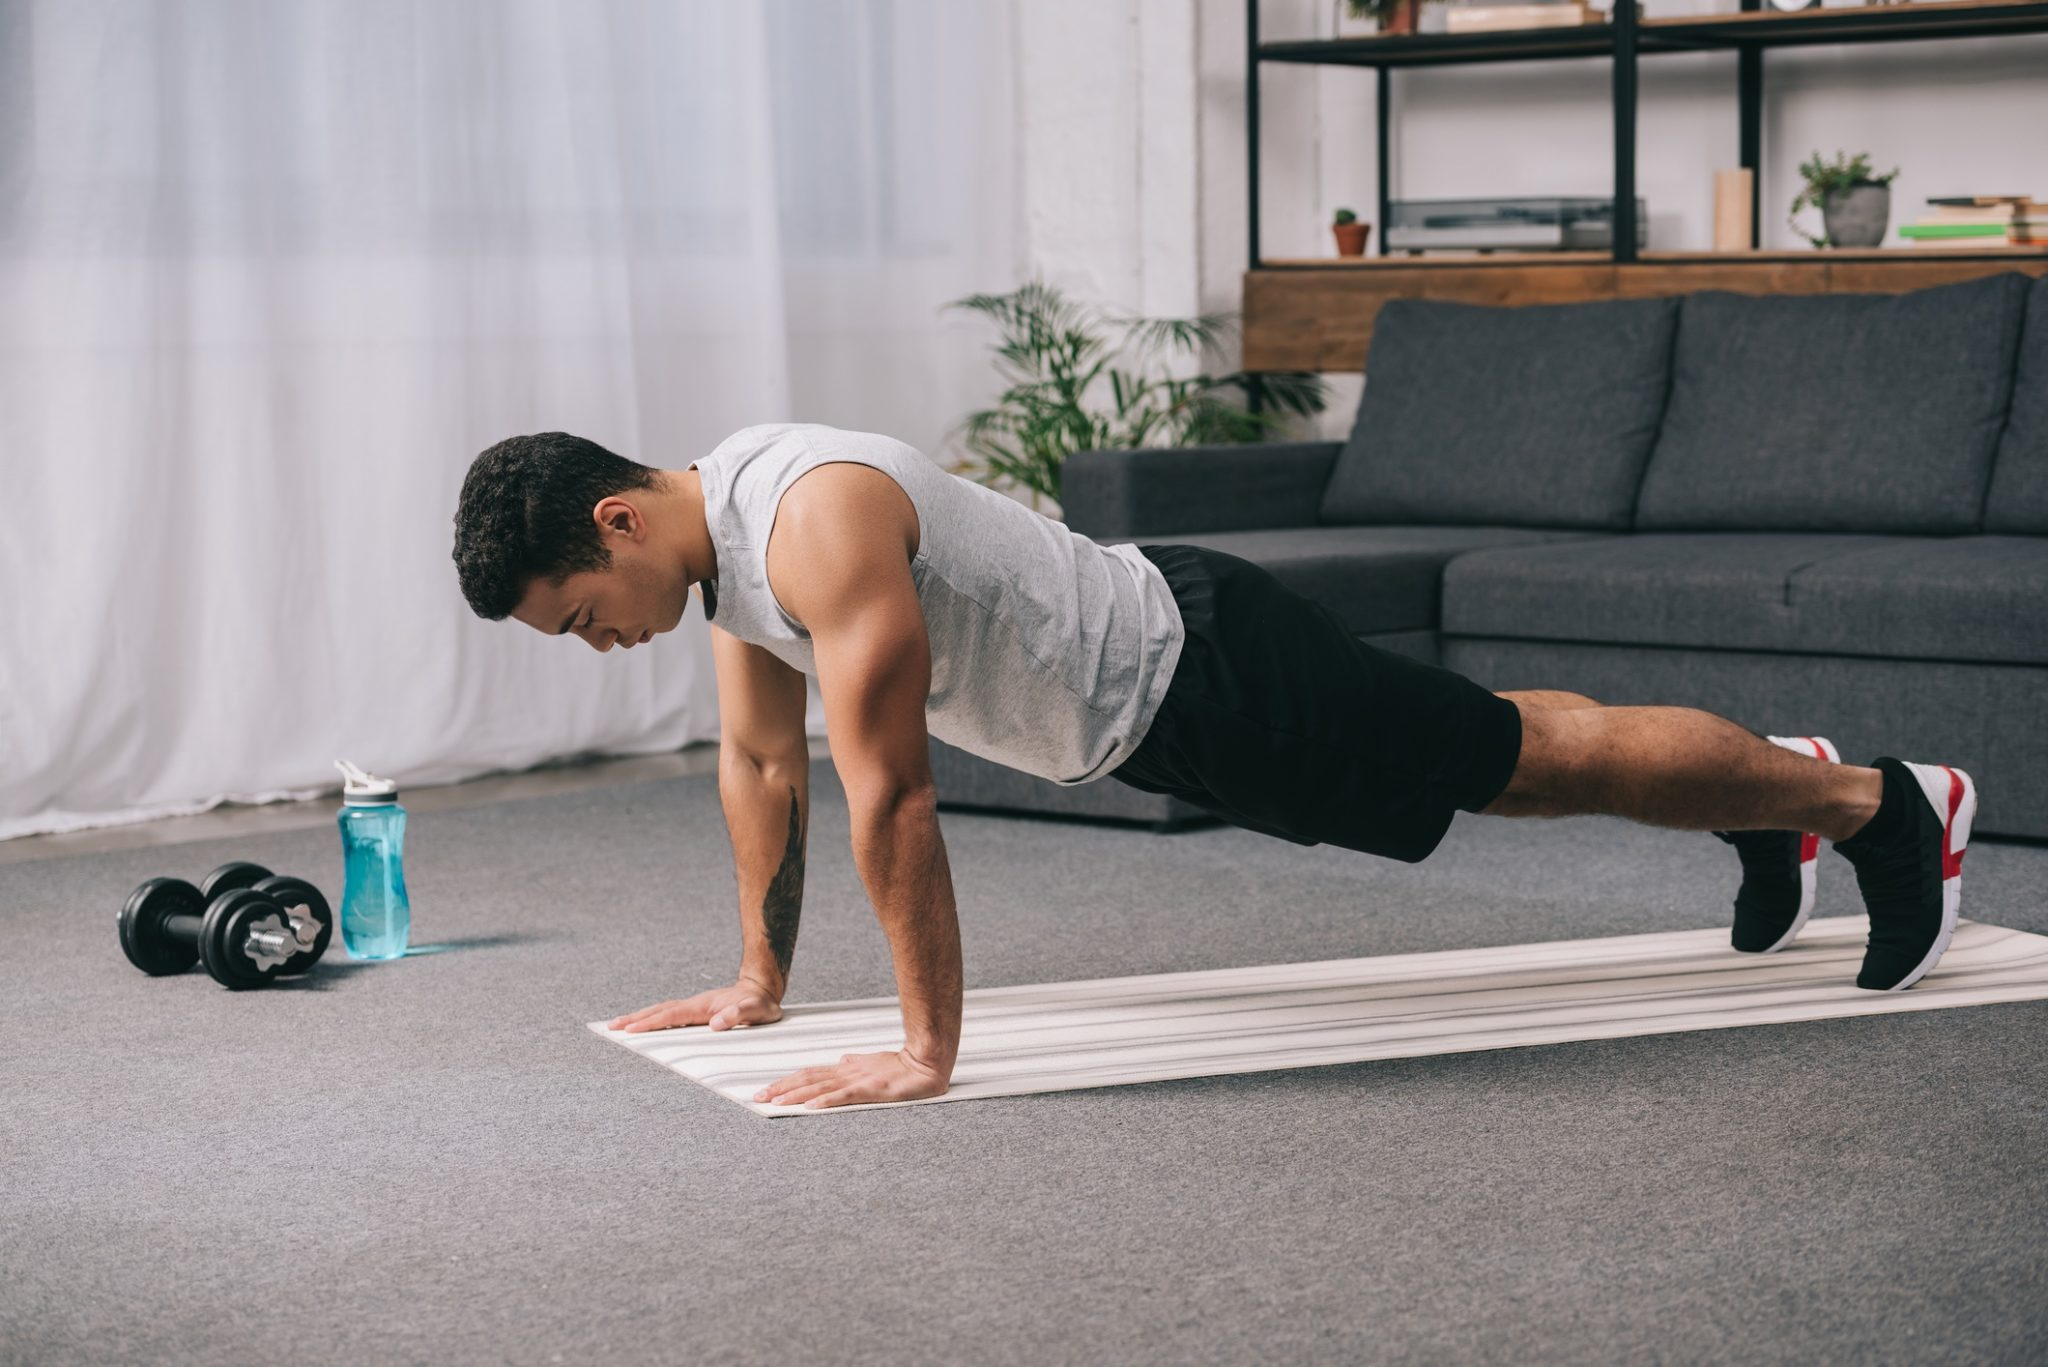 At Home Exercise Programs With Little Or No Equipment Needed The Nexus